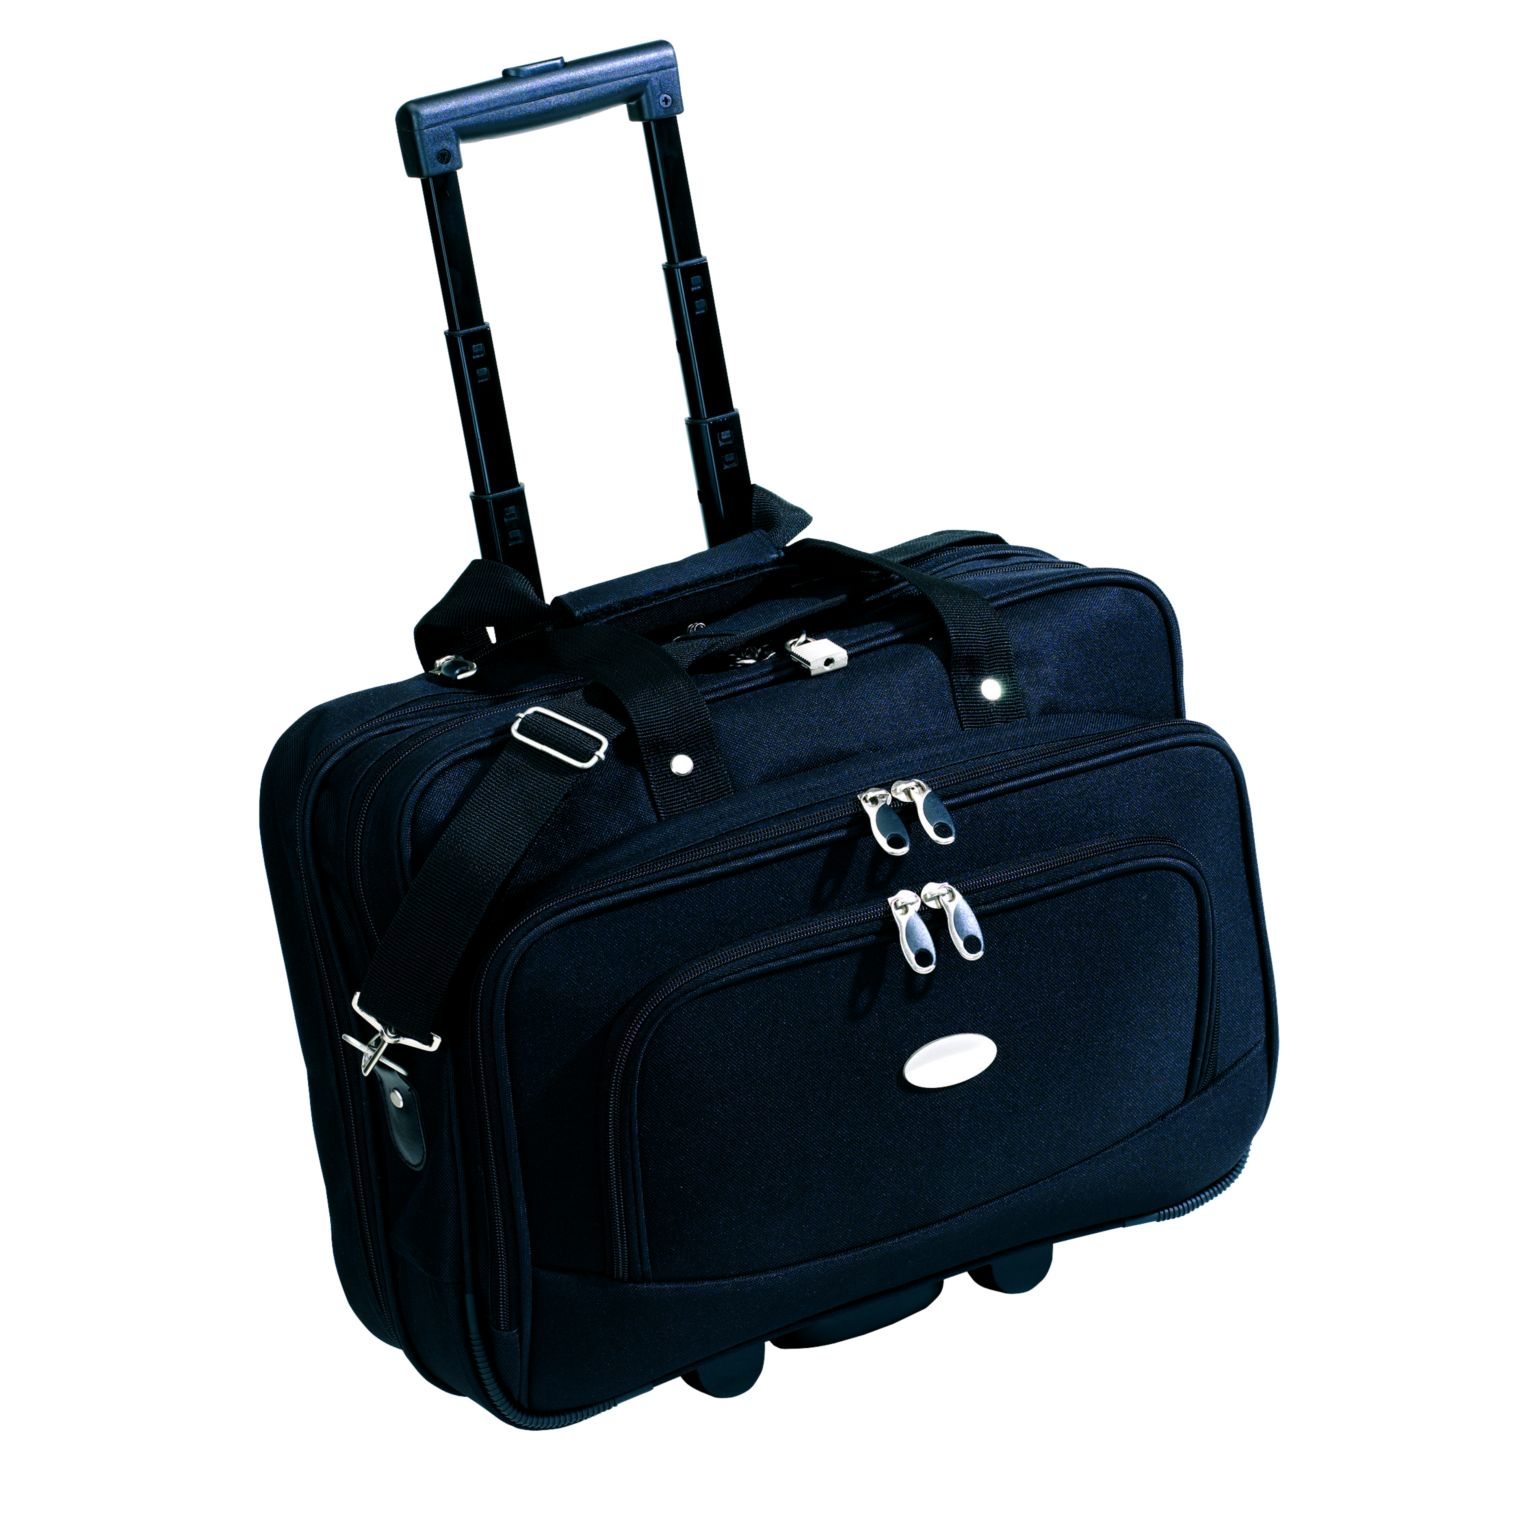 Attaché-case MANAGER